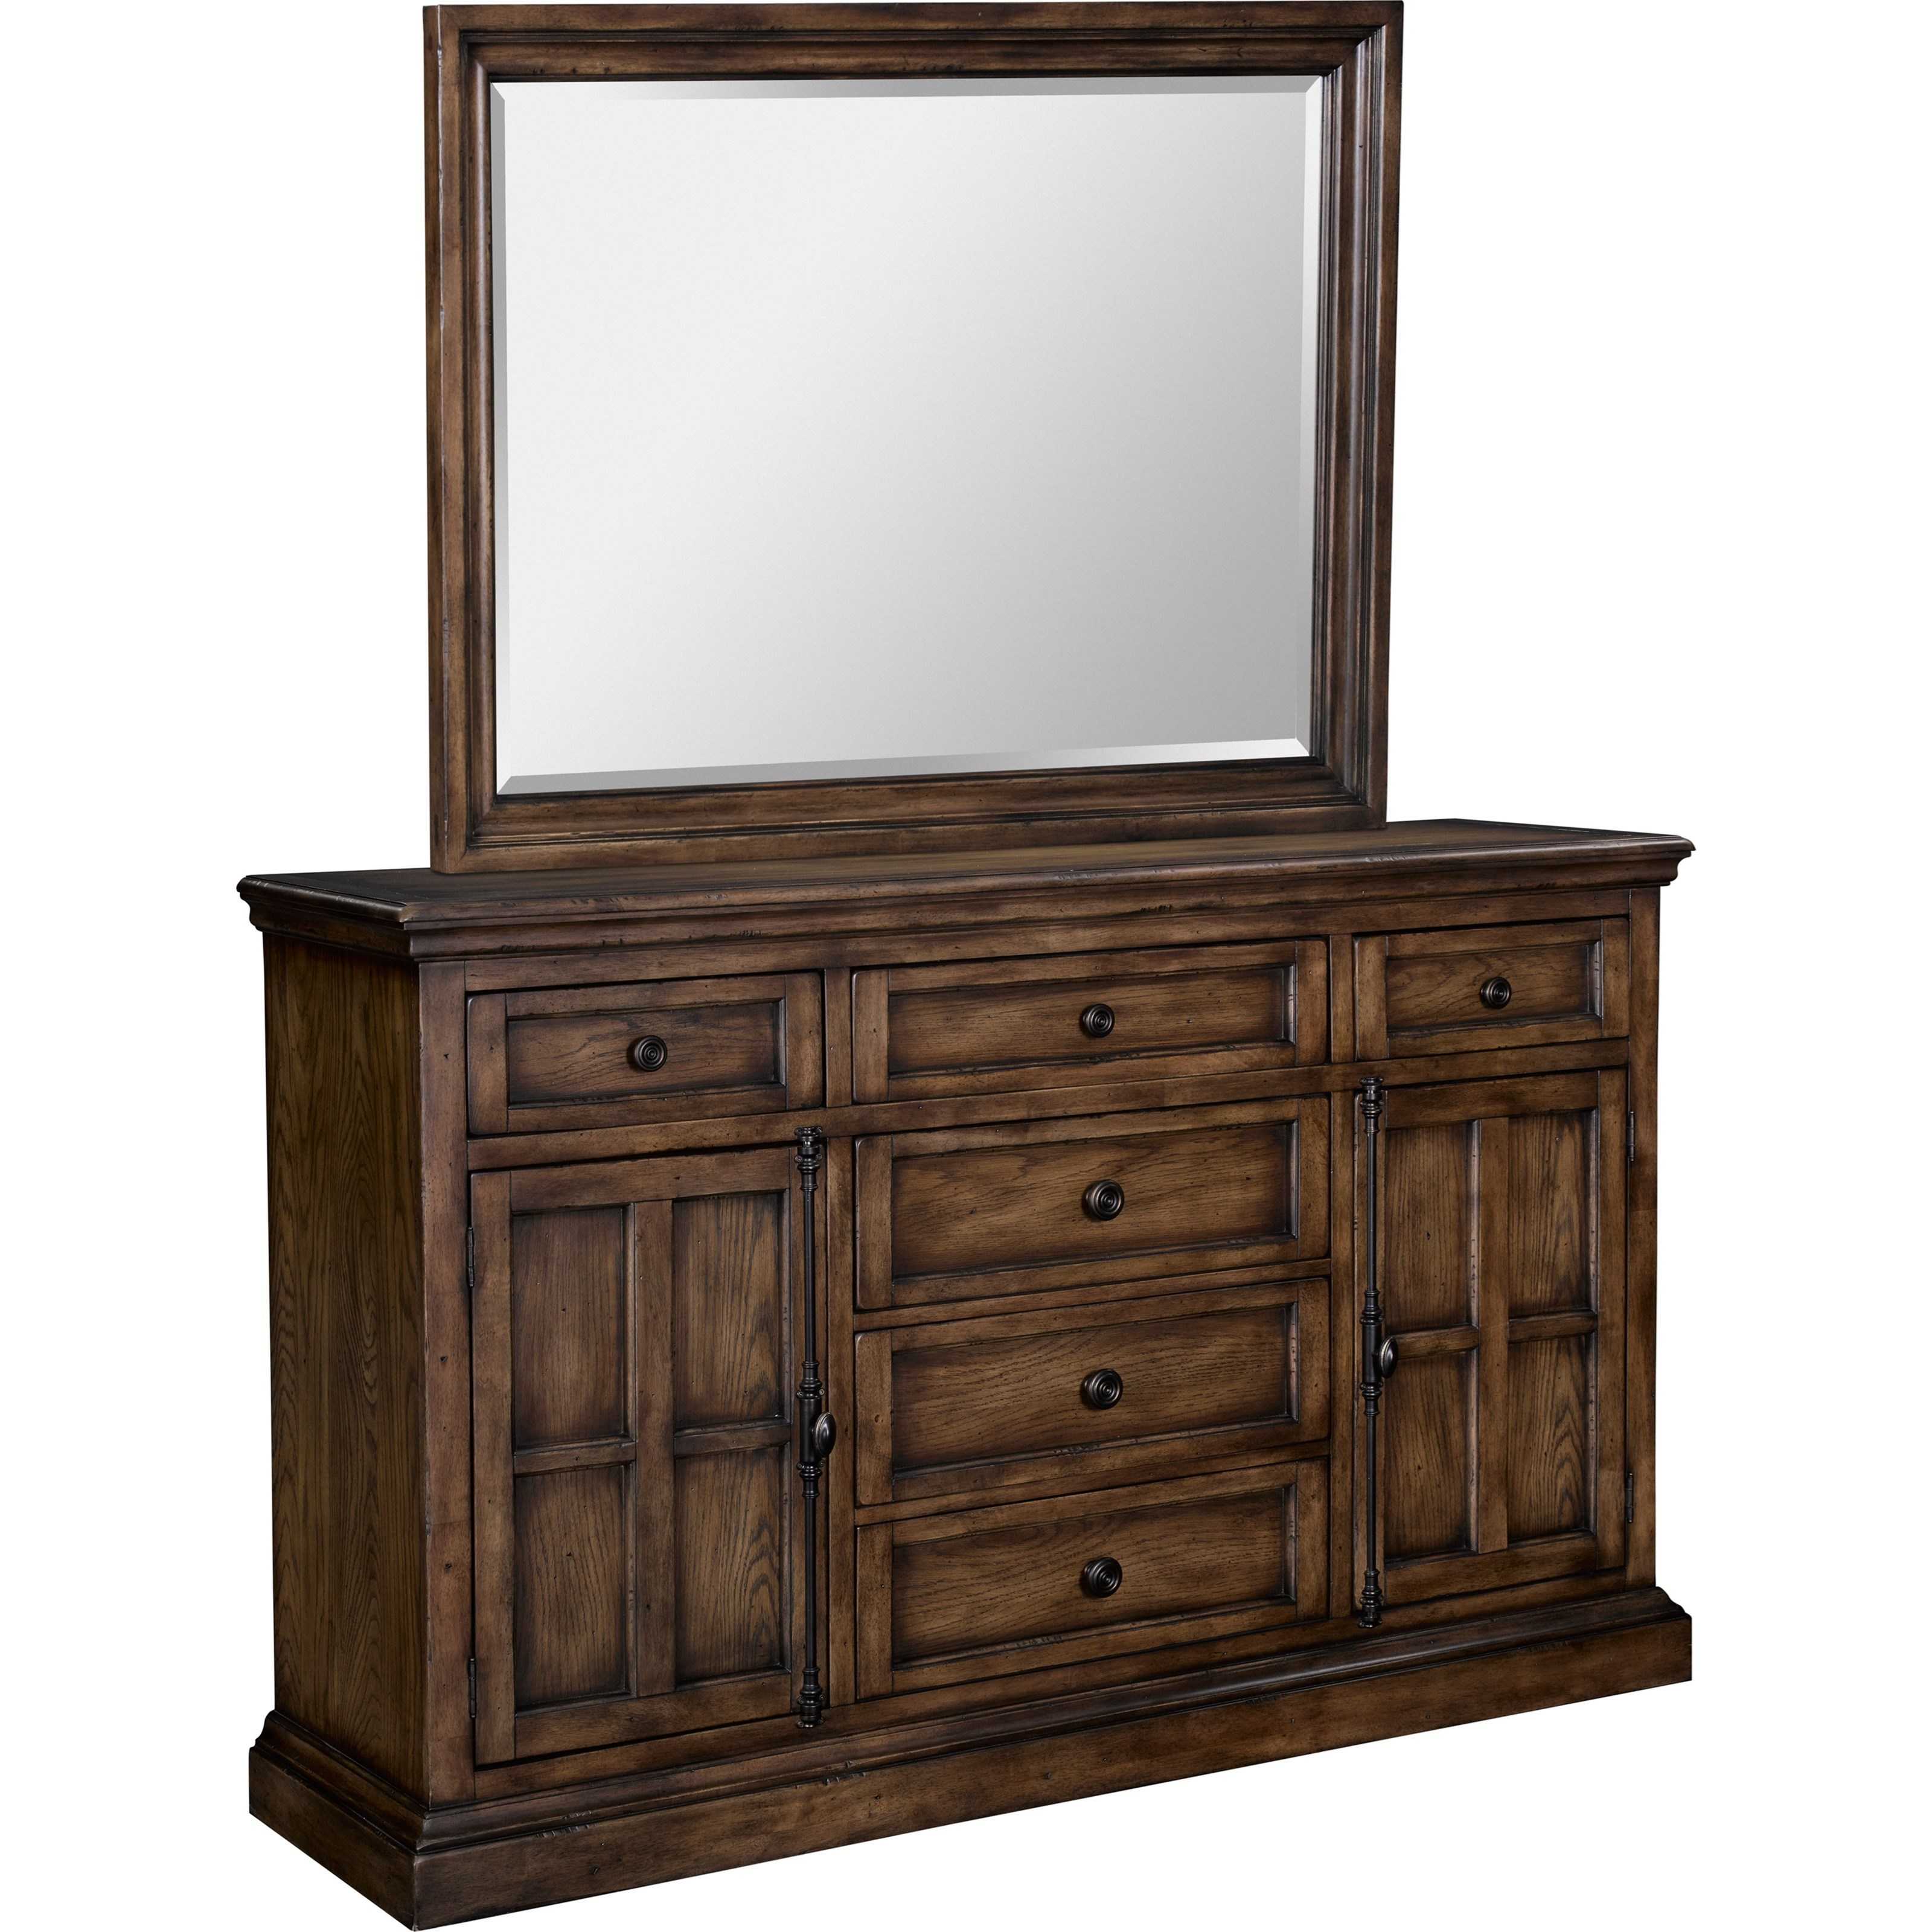 Broyhill Furniture Pike Place Dresser and Mirror Combo - Item Number: 4850-232+6